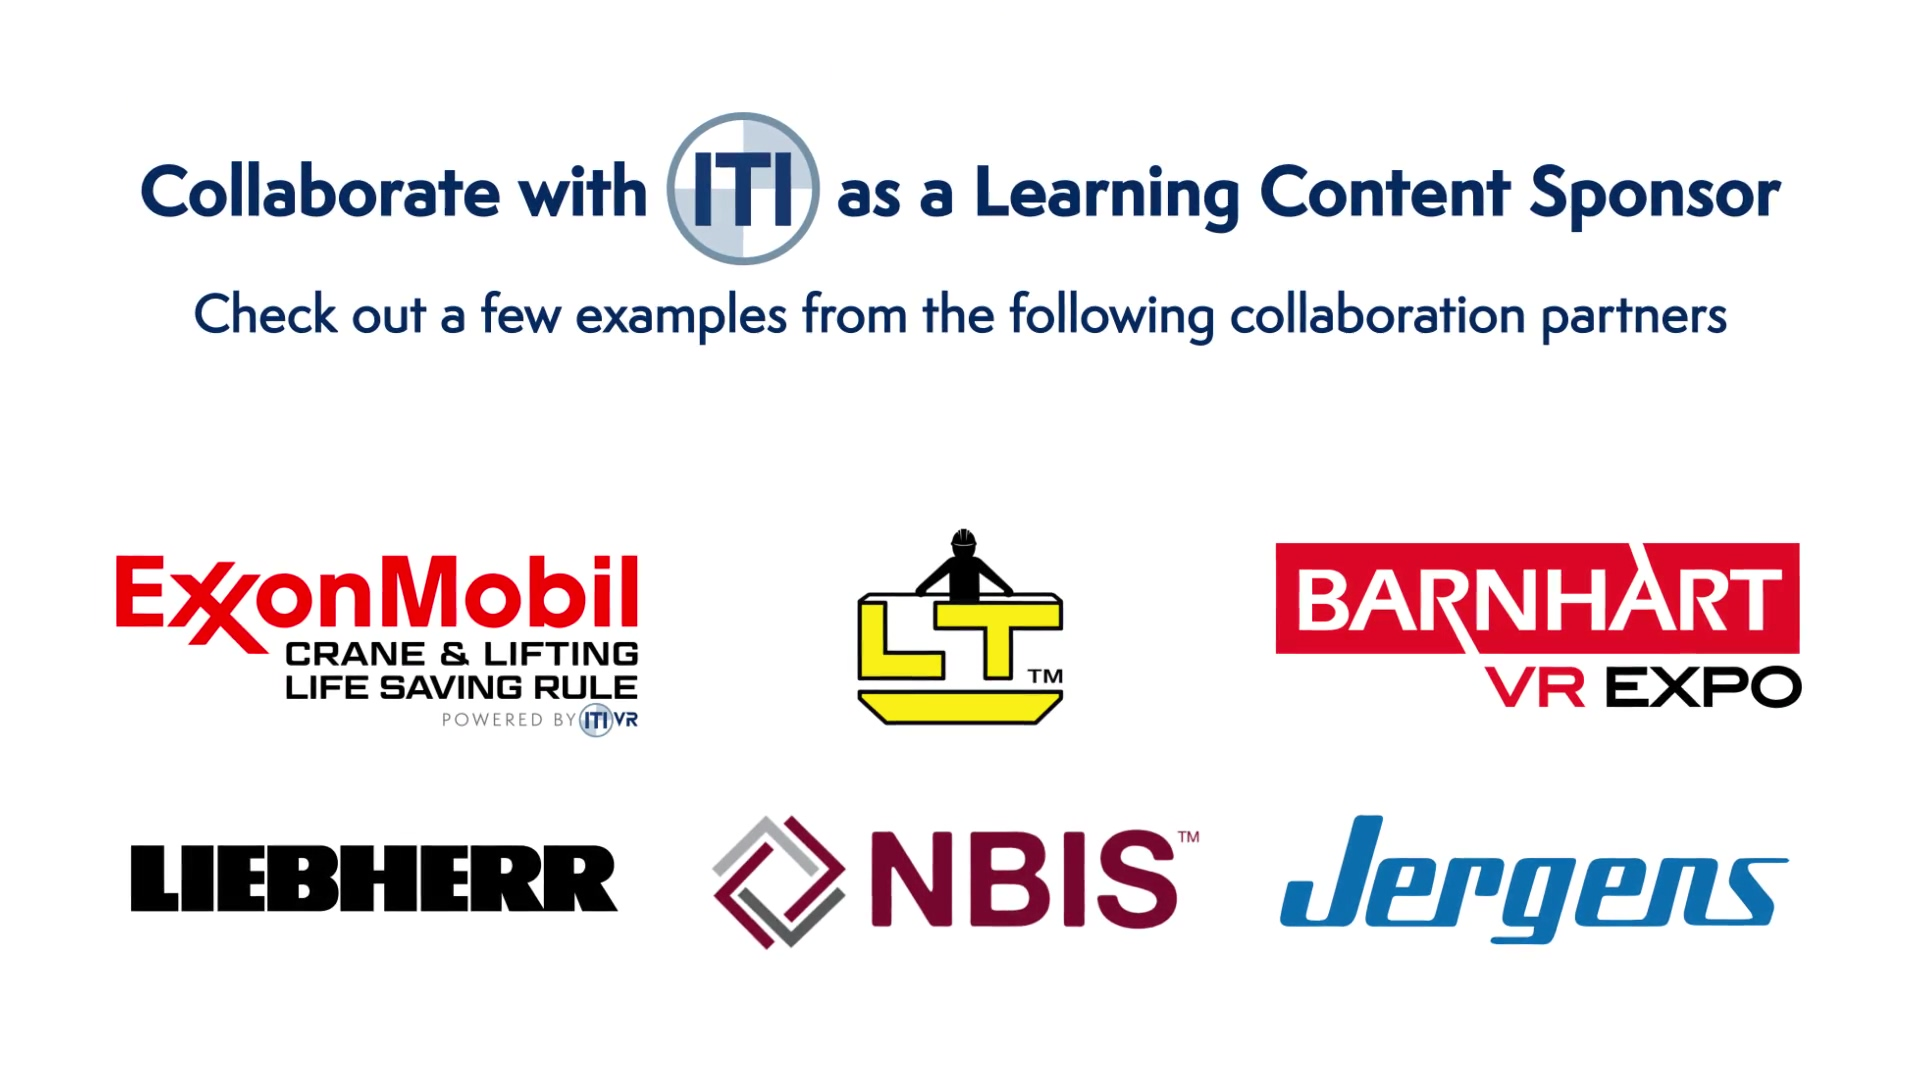 Collaborate with ITI as a Learning Content Sponsor-051921-02-1